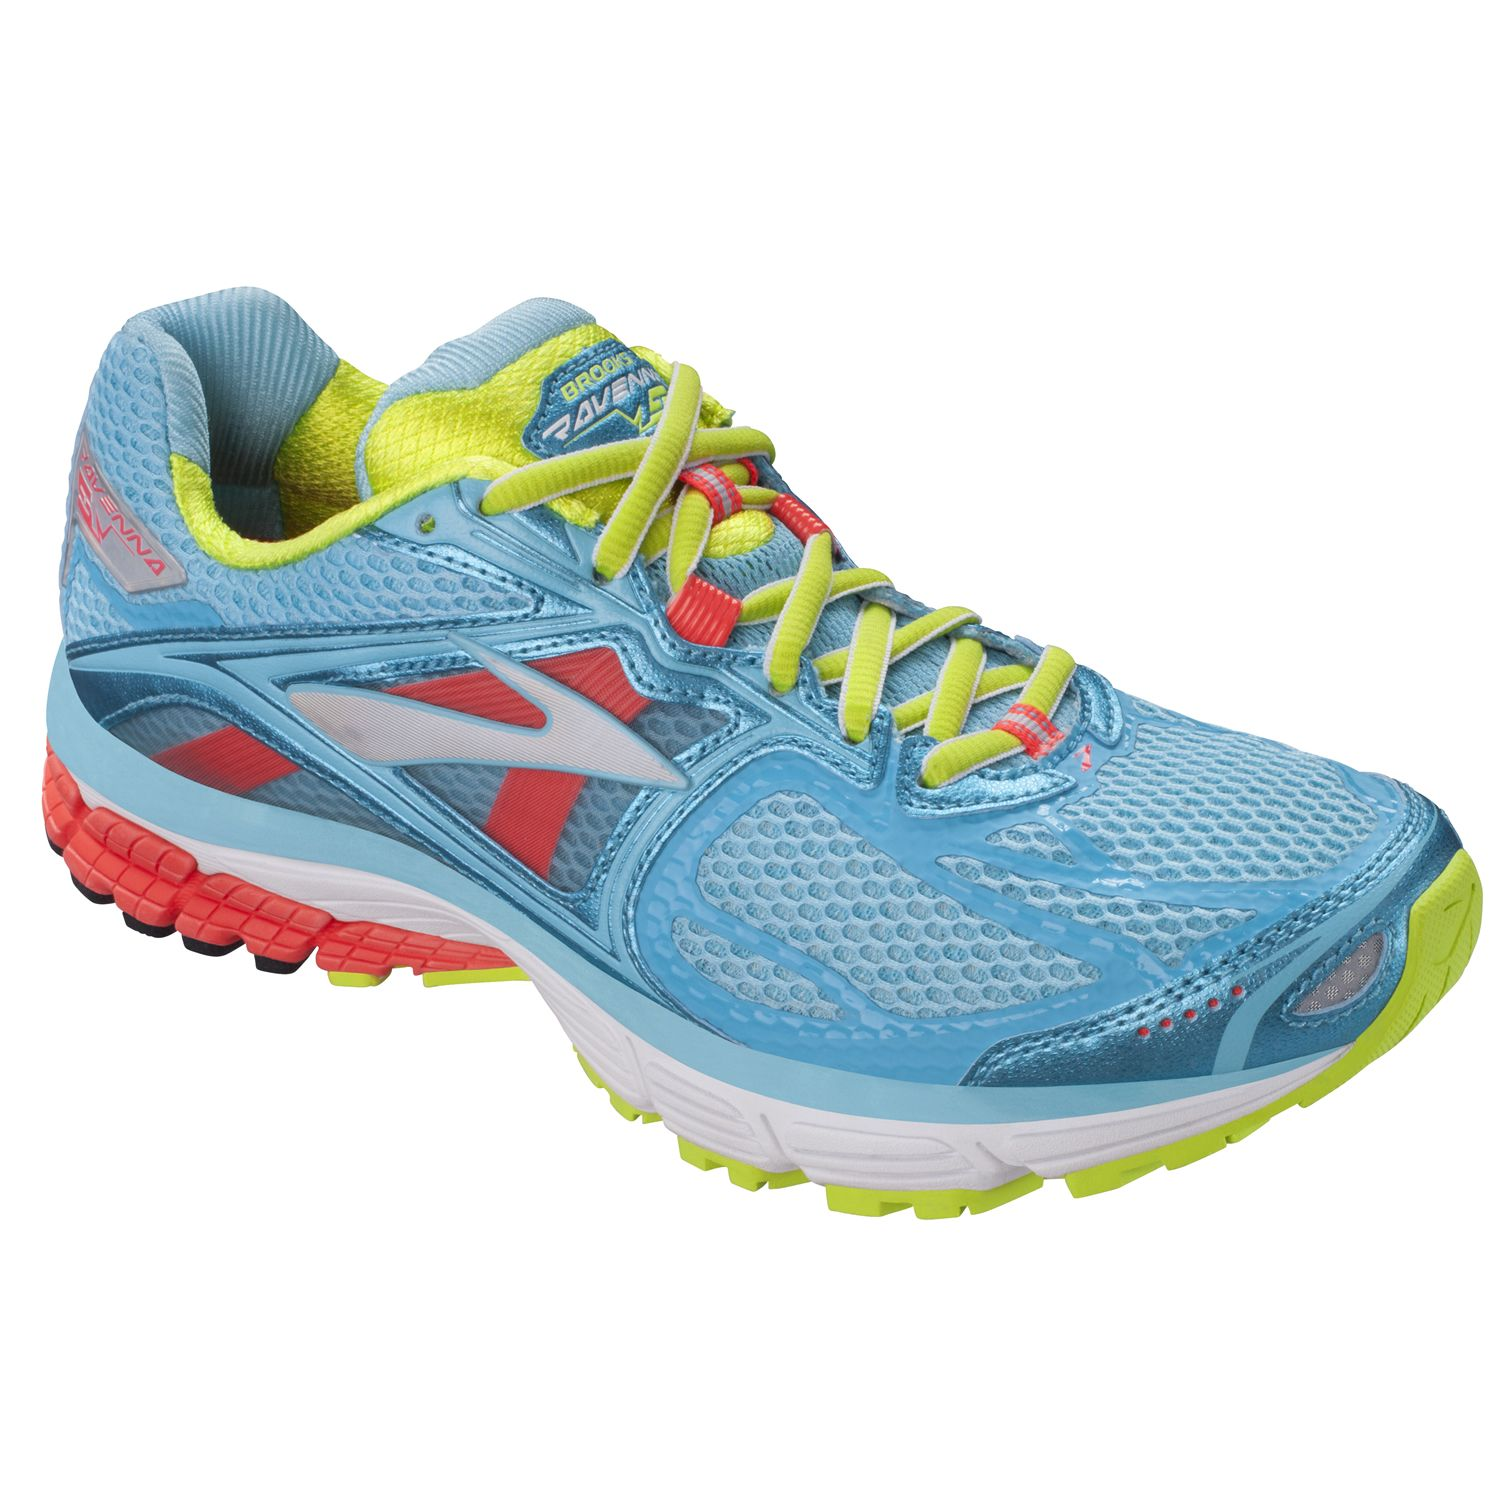 fb84a502db6 Check out which Brooks shoes made the cut and many others here  Runner s  World The Best Running Shoes of 2017 Brooks is one of our favorite athletic  shoes ...